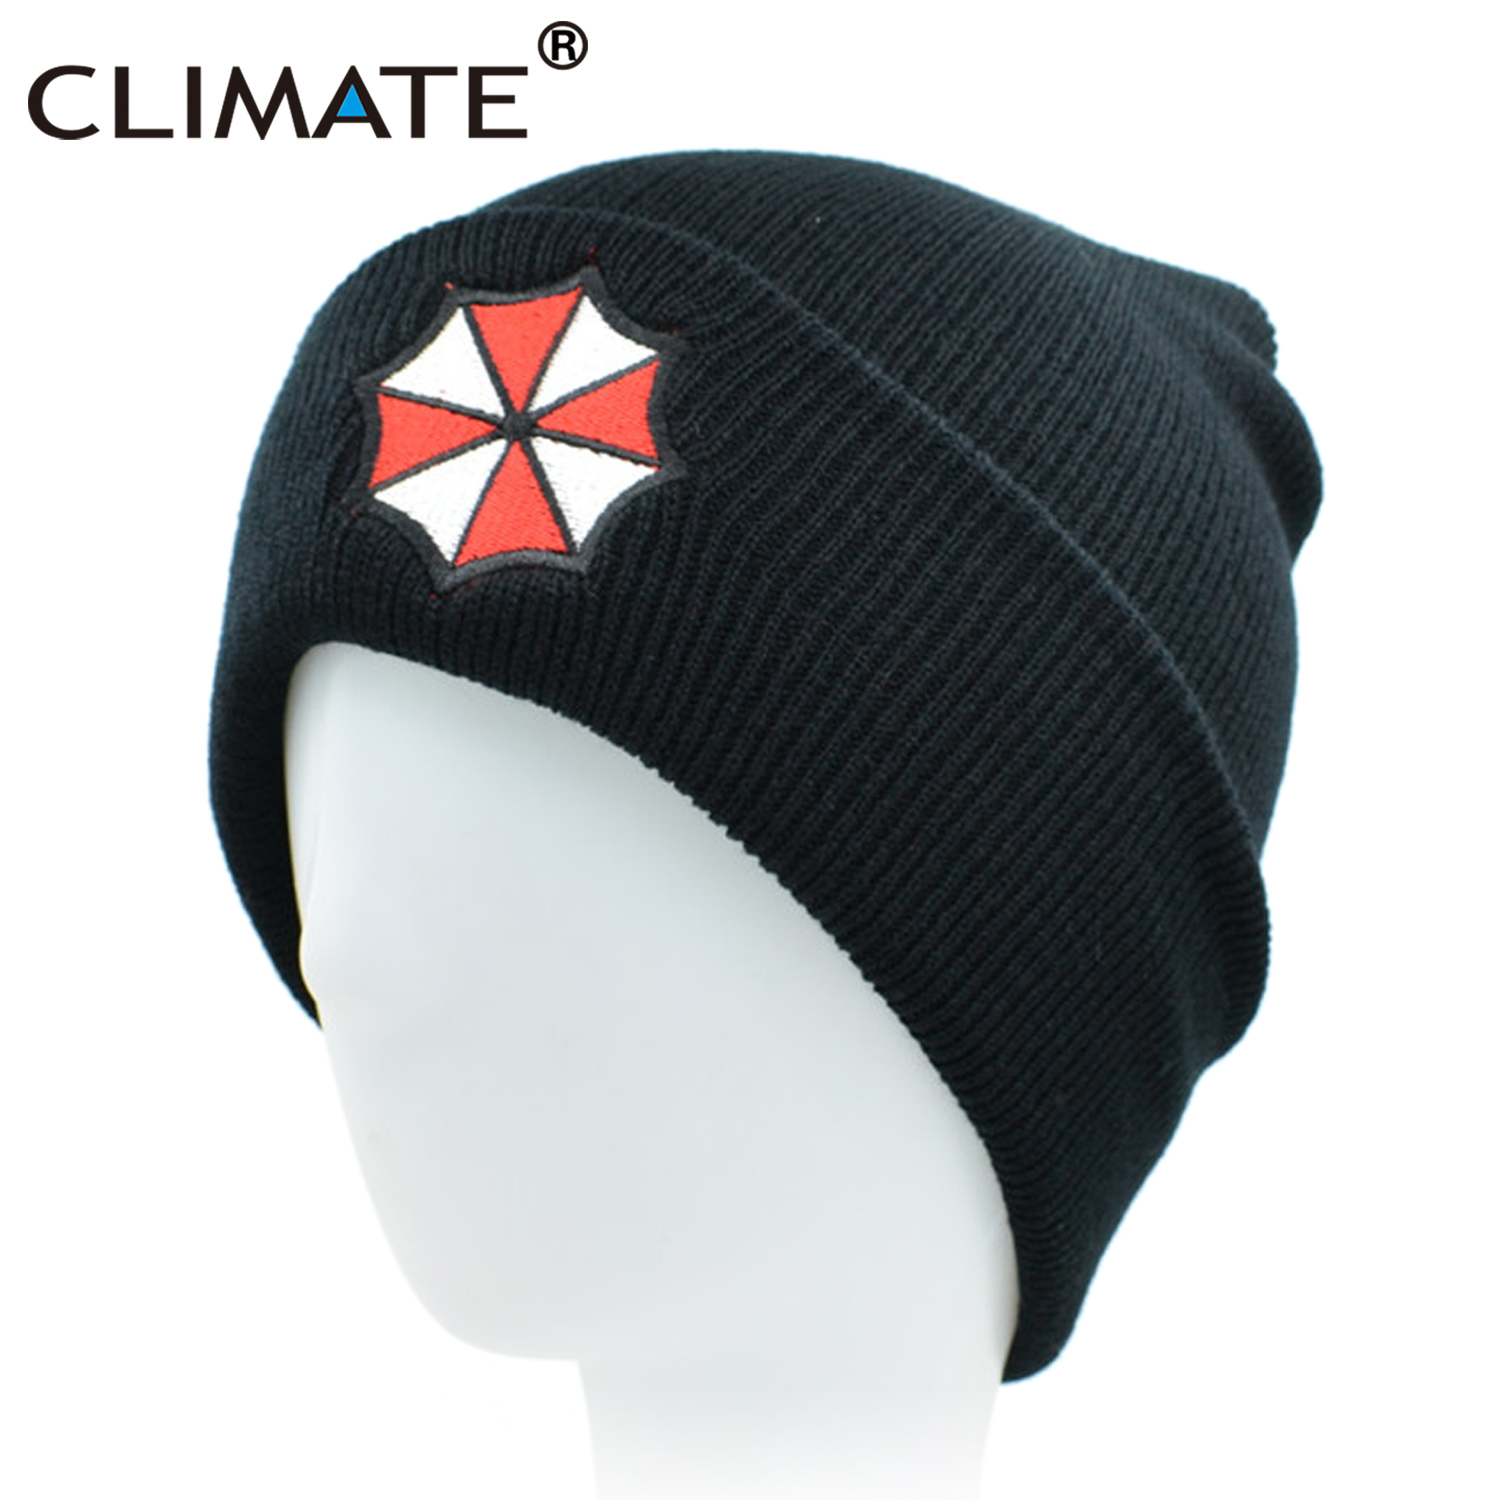 CLIMATE Umbrella Corporation Beanie Hat Winter Warm Beanie Hat Men Women Soft Cool Knitted Beanies Hat Cap For Adult Men Women